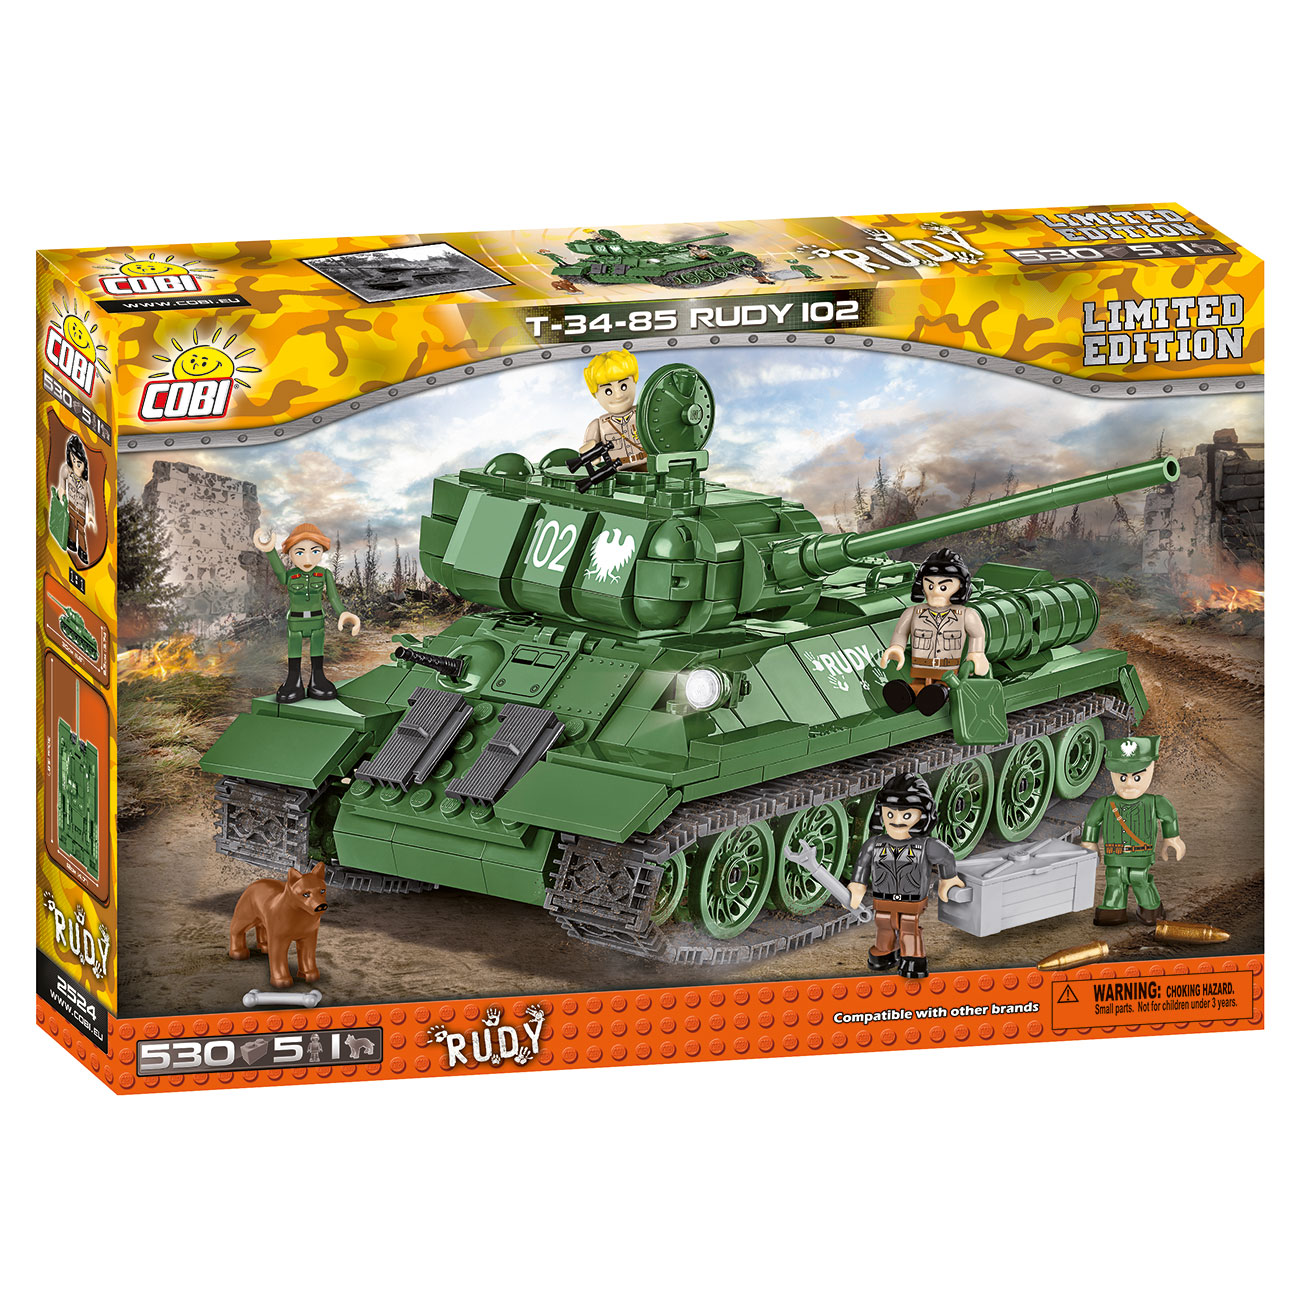 Cobi Small Army Collection Bausatz Panzer T34-85 Rudy 102 530 Teile 2524 Limited Edition 1